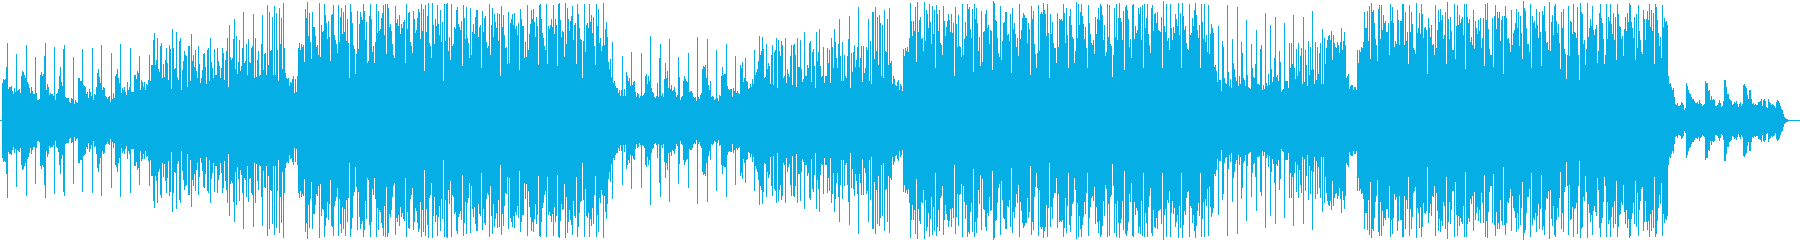 Western Music Future Pop ED Hope's reproduced waveform